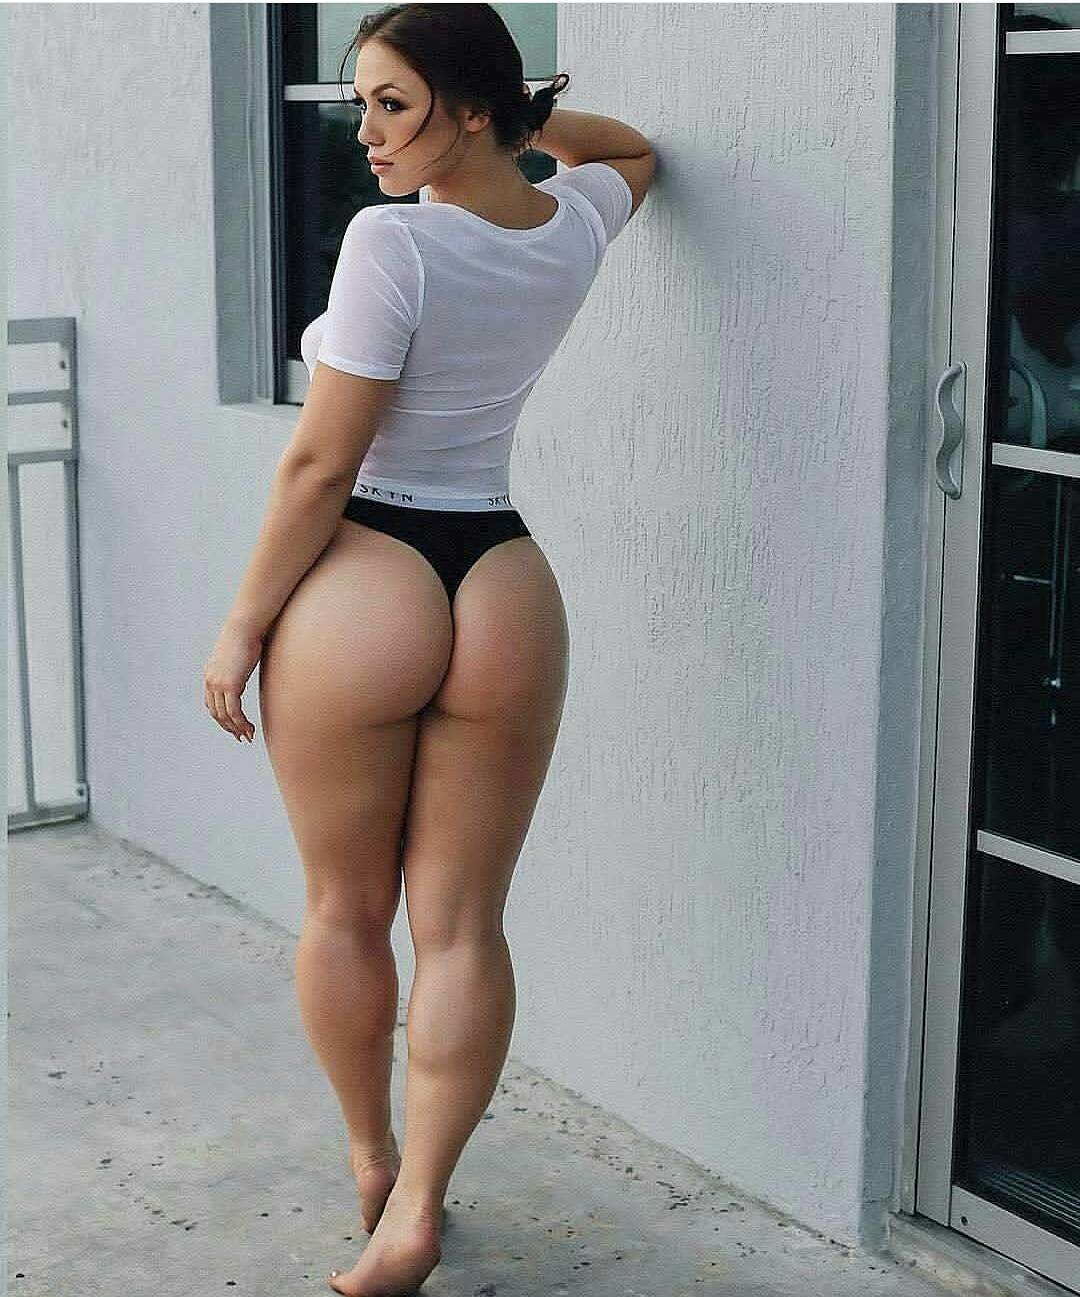 Young woman with a big ass, seen